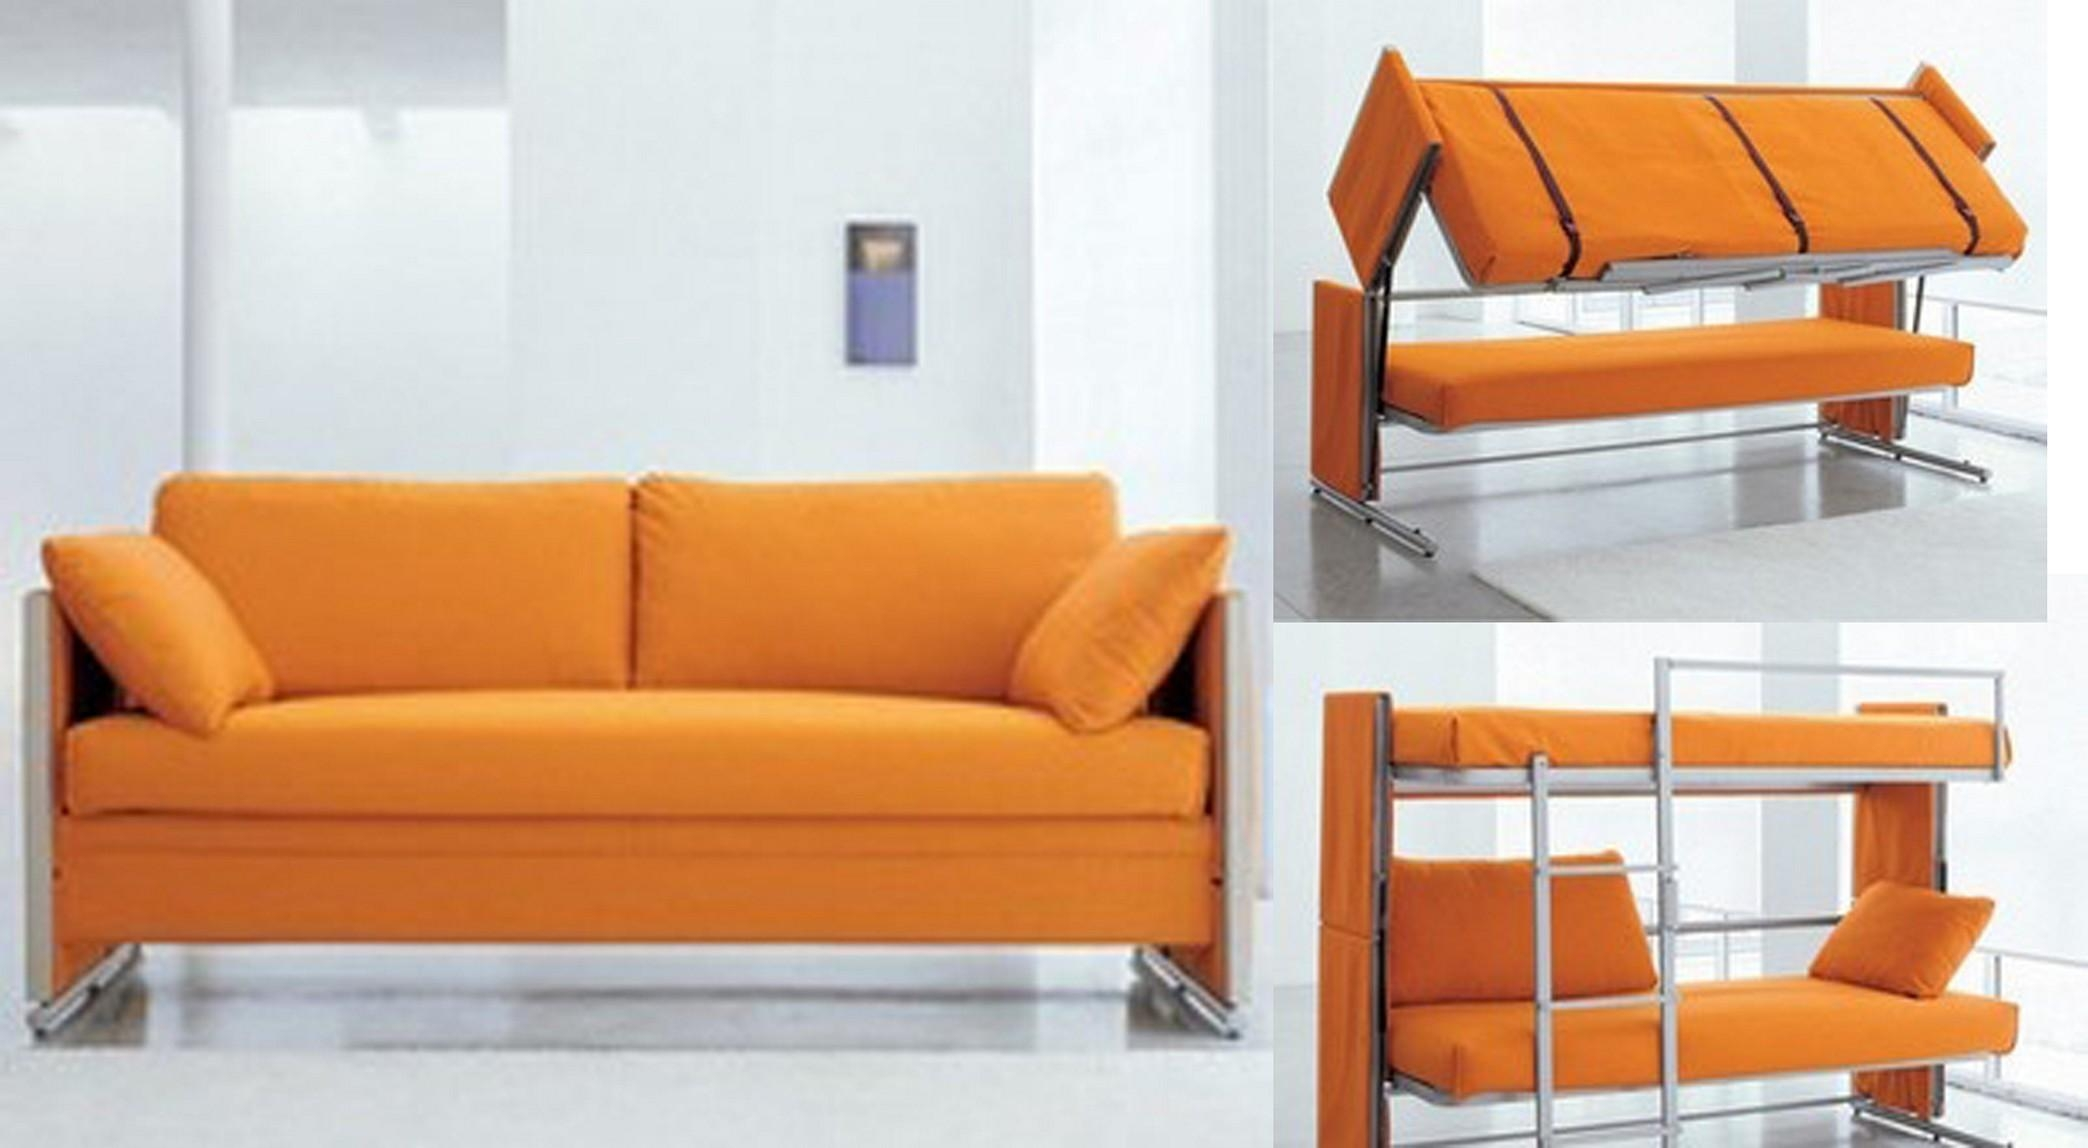 Sofa Converts To Bunk Bed | Sofa Gallery | Kengire Inside Sofas Converts To Bunk Bed (Image 20 of 20)